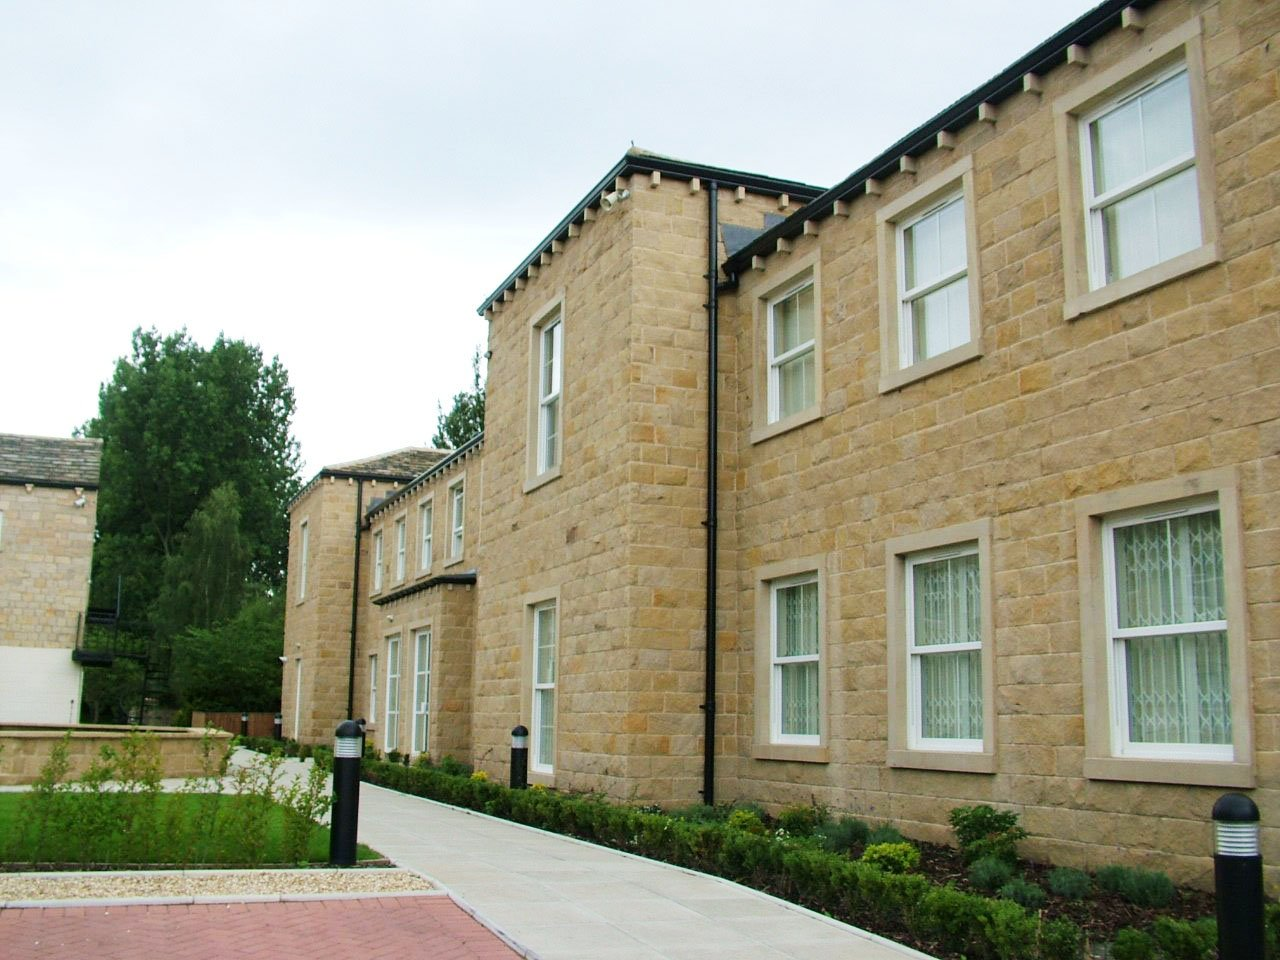 Offices for Arncliffe Homes Ltd at Thorner, Leeds